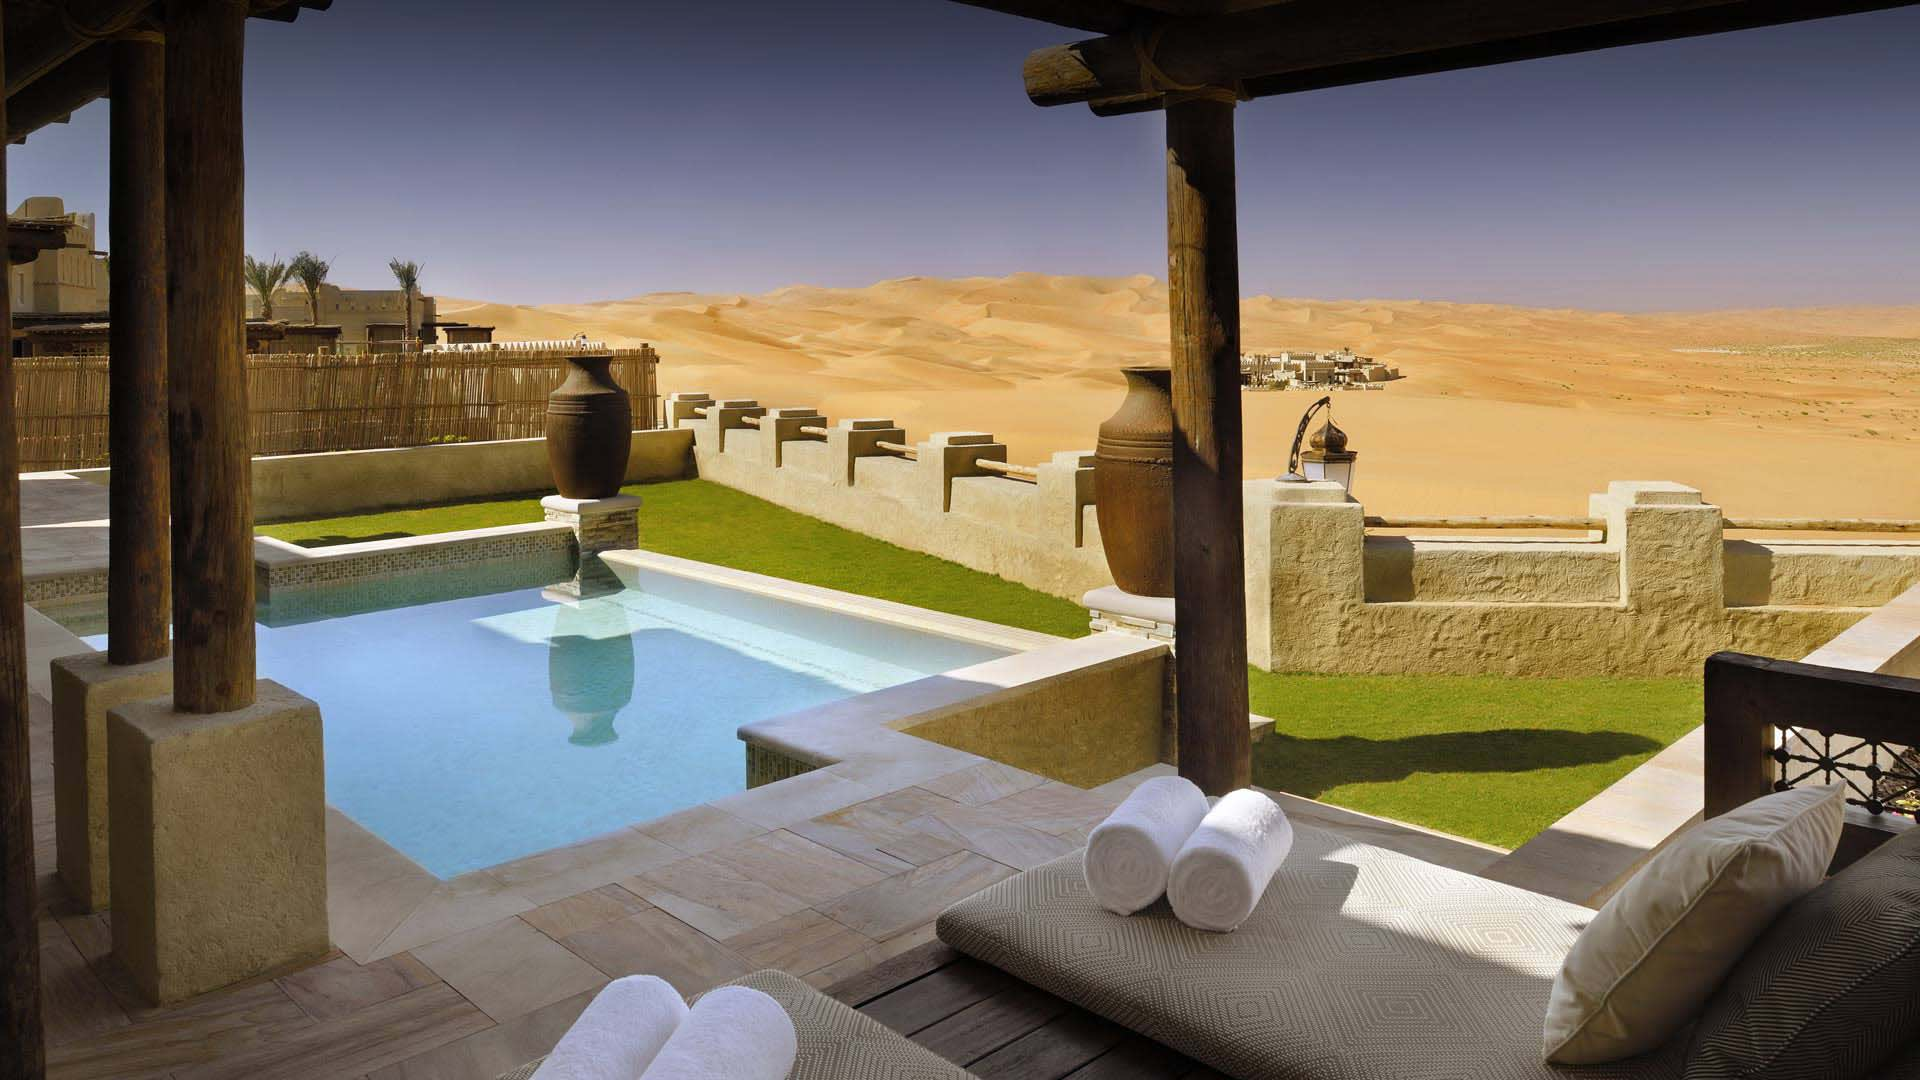 Abu Dhabi Resort | Qasr Al Sarab Desert Resort by Anantara